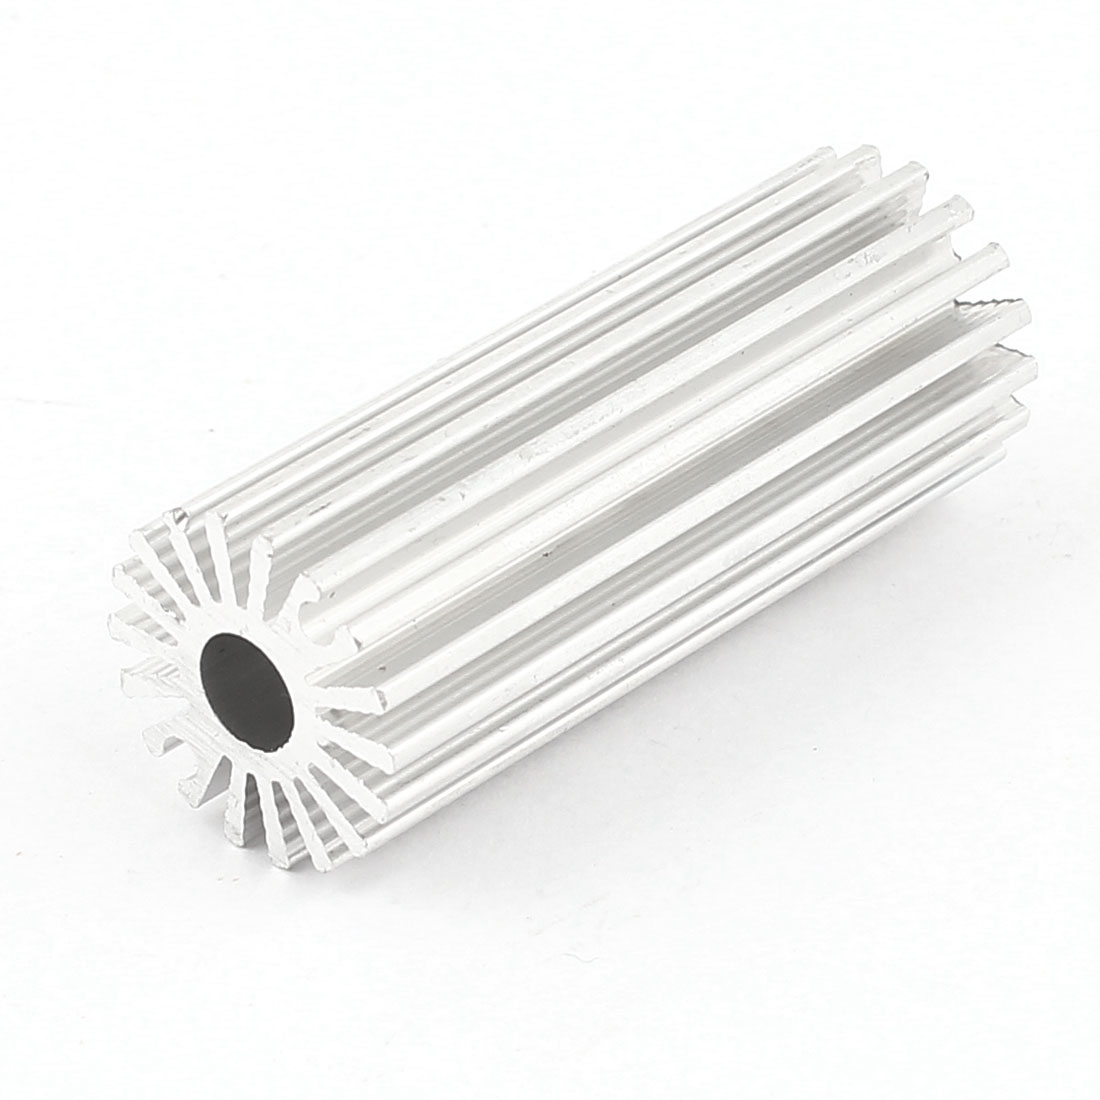 20mm x 50mm Cylinder 1W High Power LED Heatsink Aluminium Cooling Fin